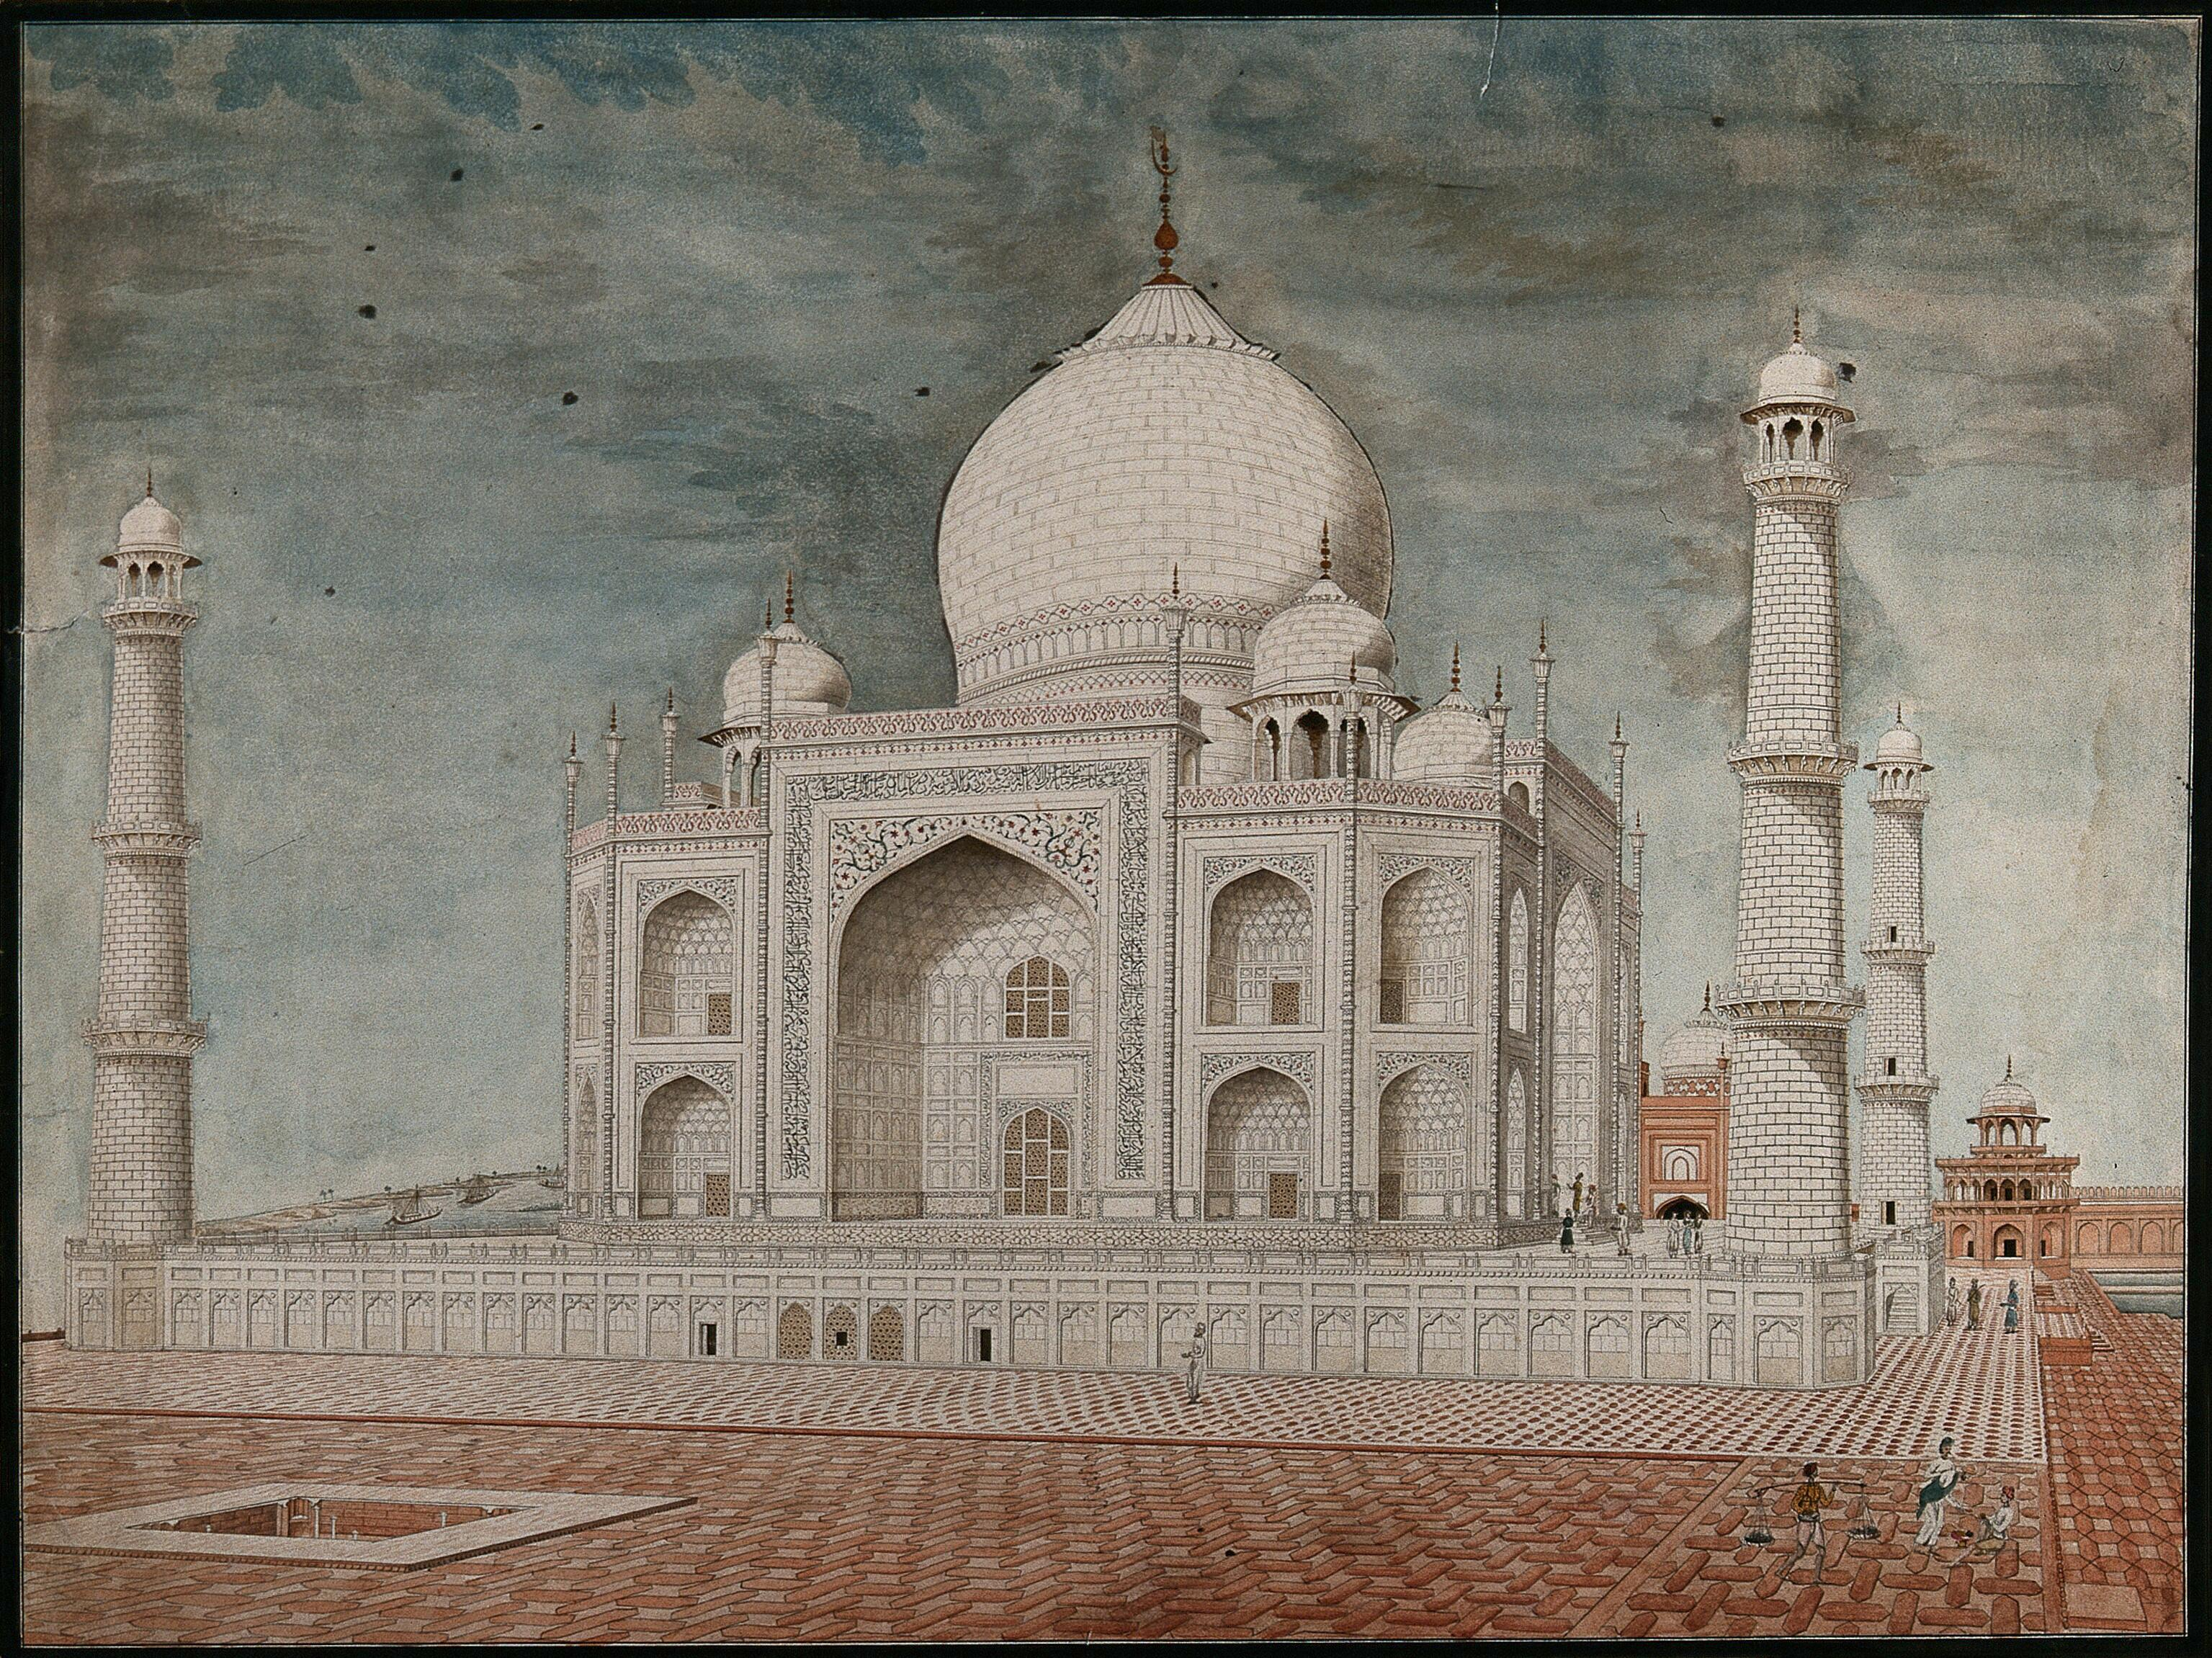 Agra: the Taj Mahal  Watercolour painting by an Indian